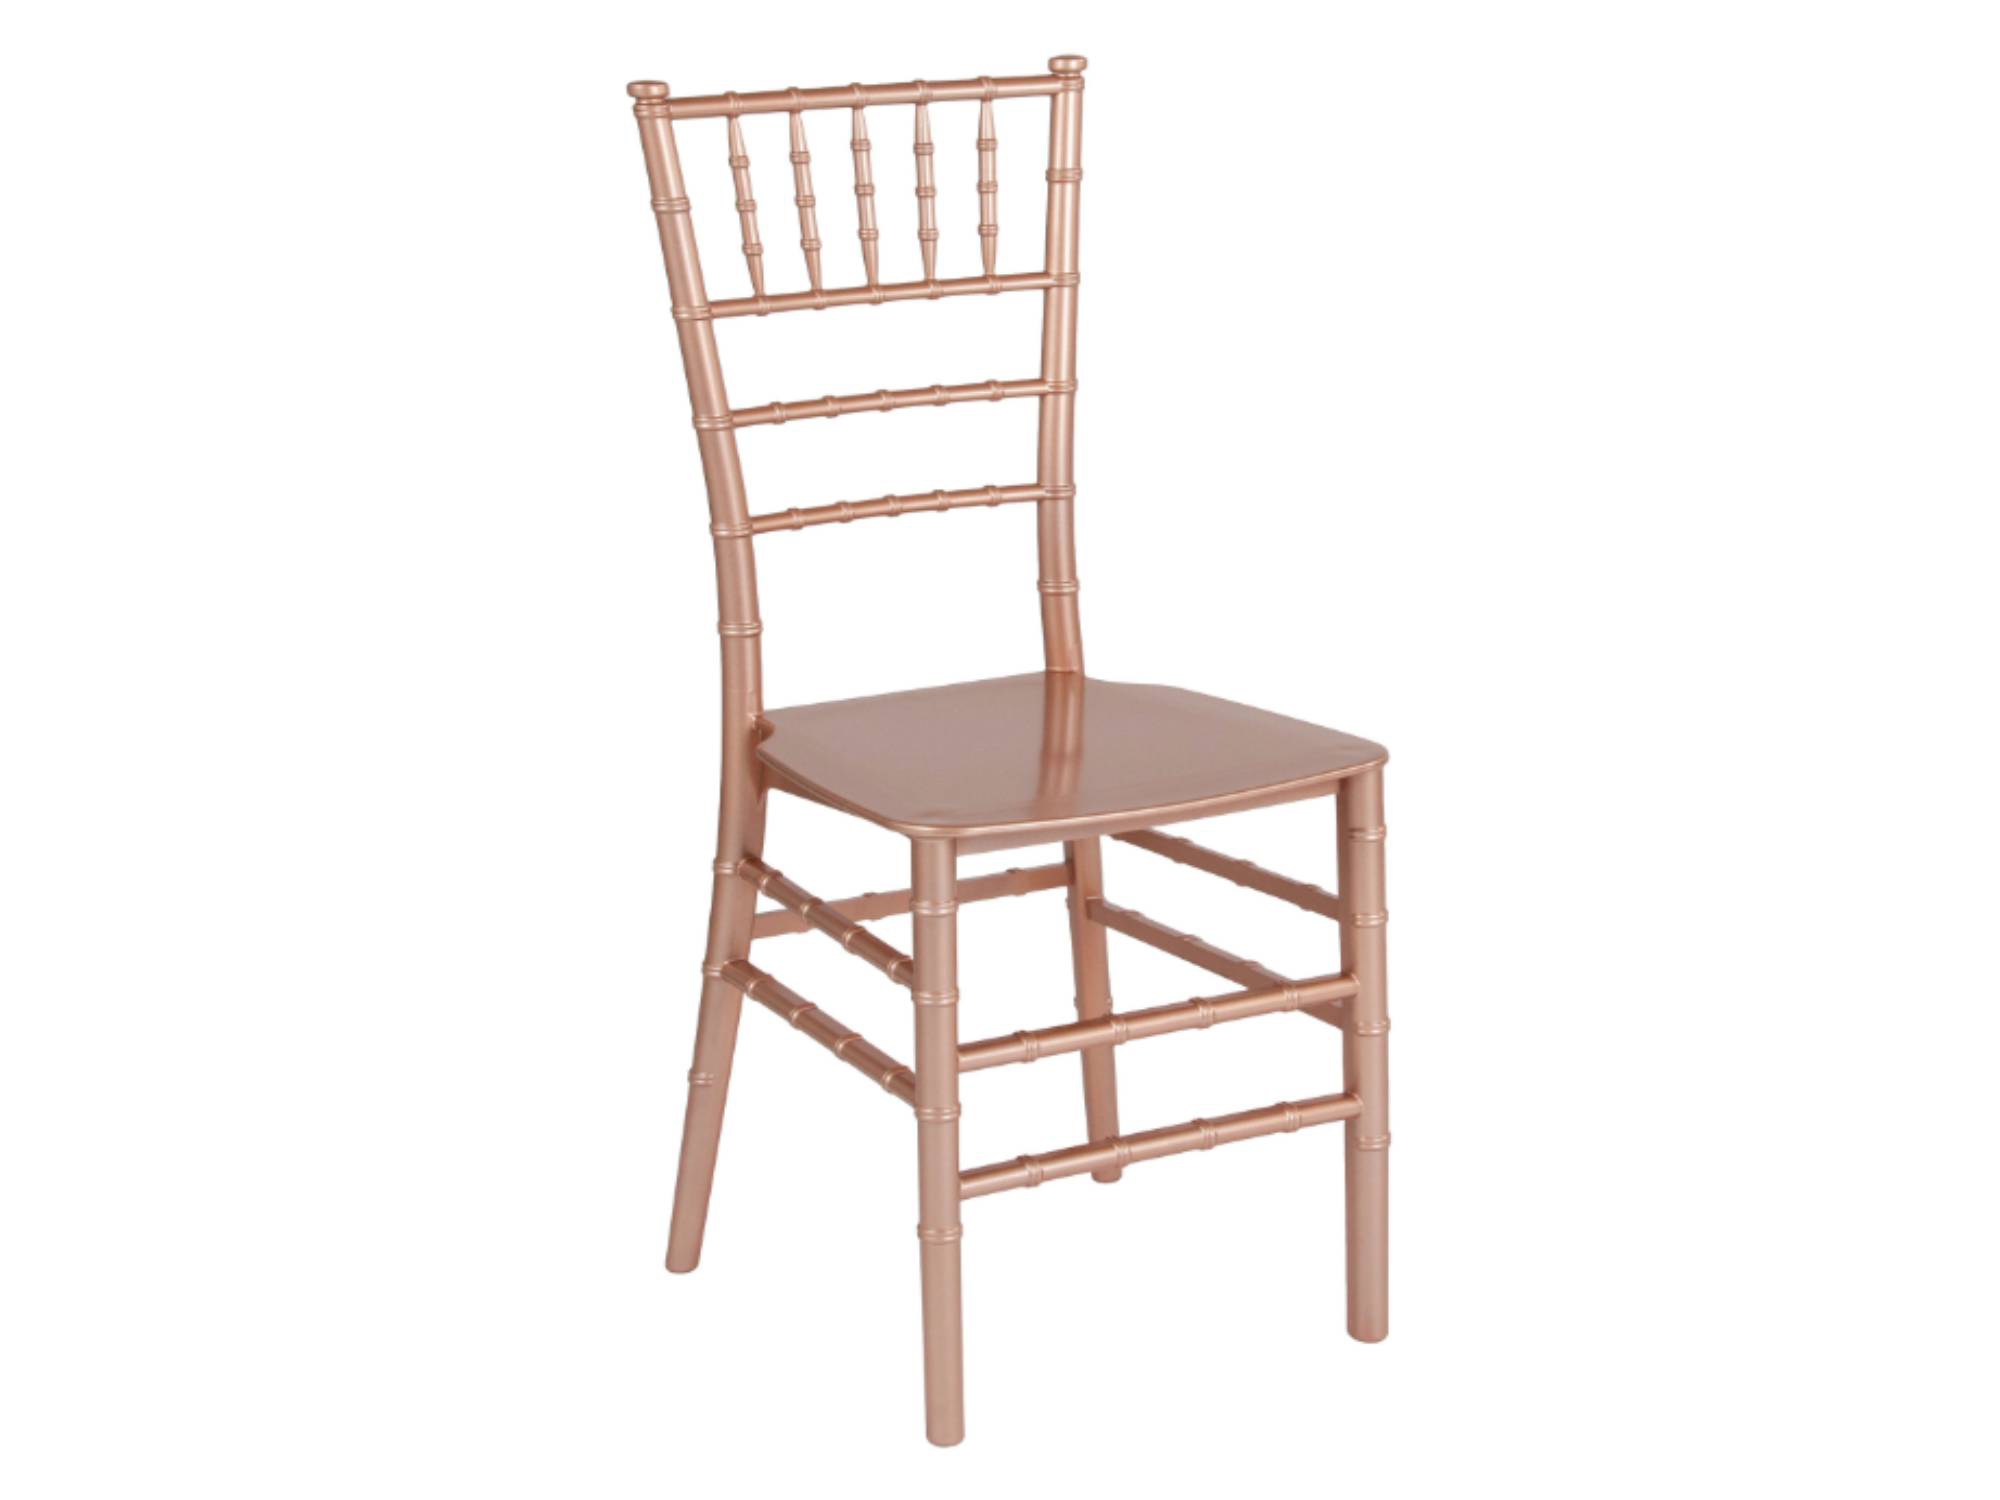 CHIAVARI CHAIR - ROSE GOLD